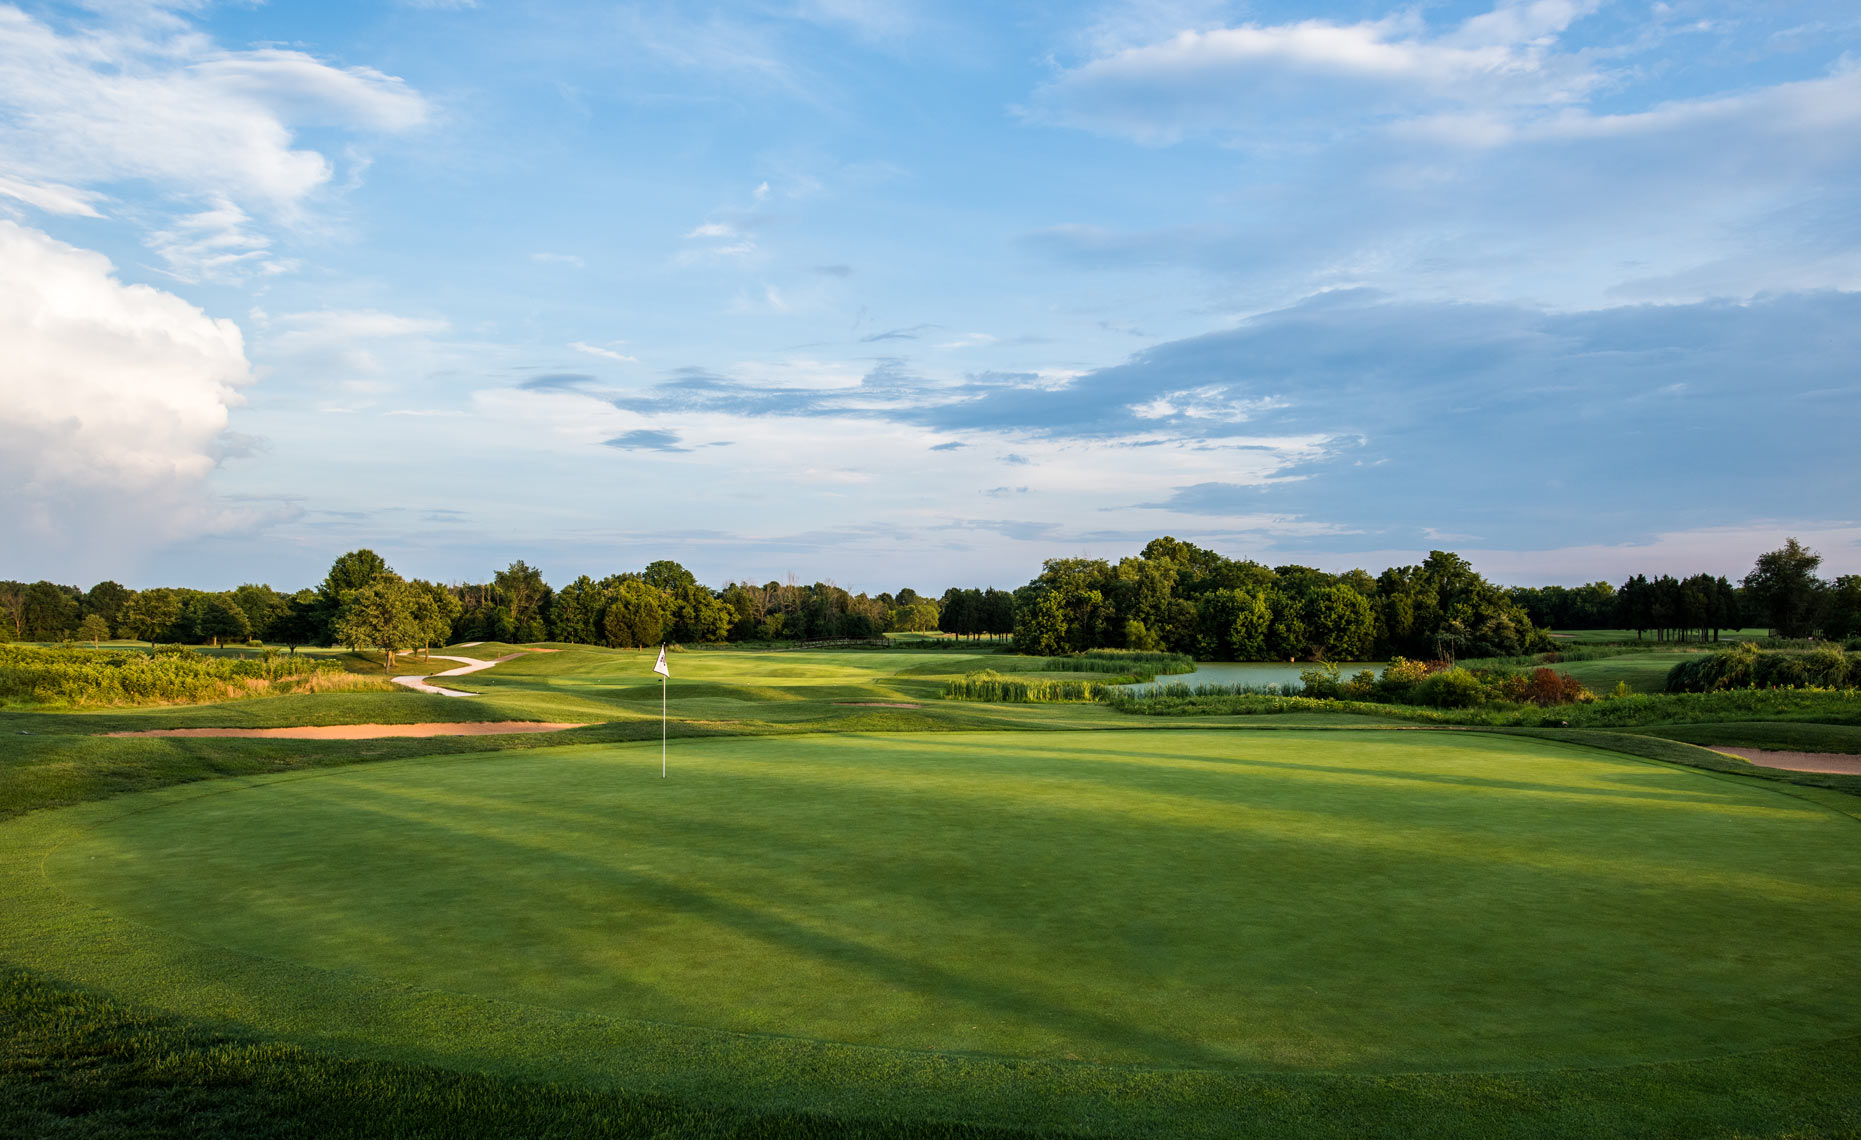 Neil-Colton-bristow-manor-golf-course-fa-pf-102